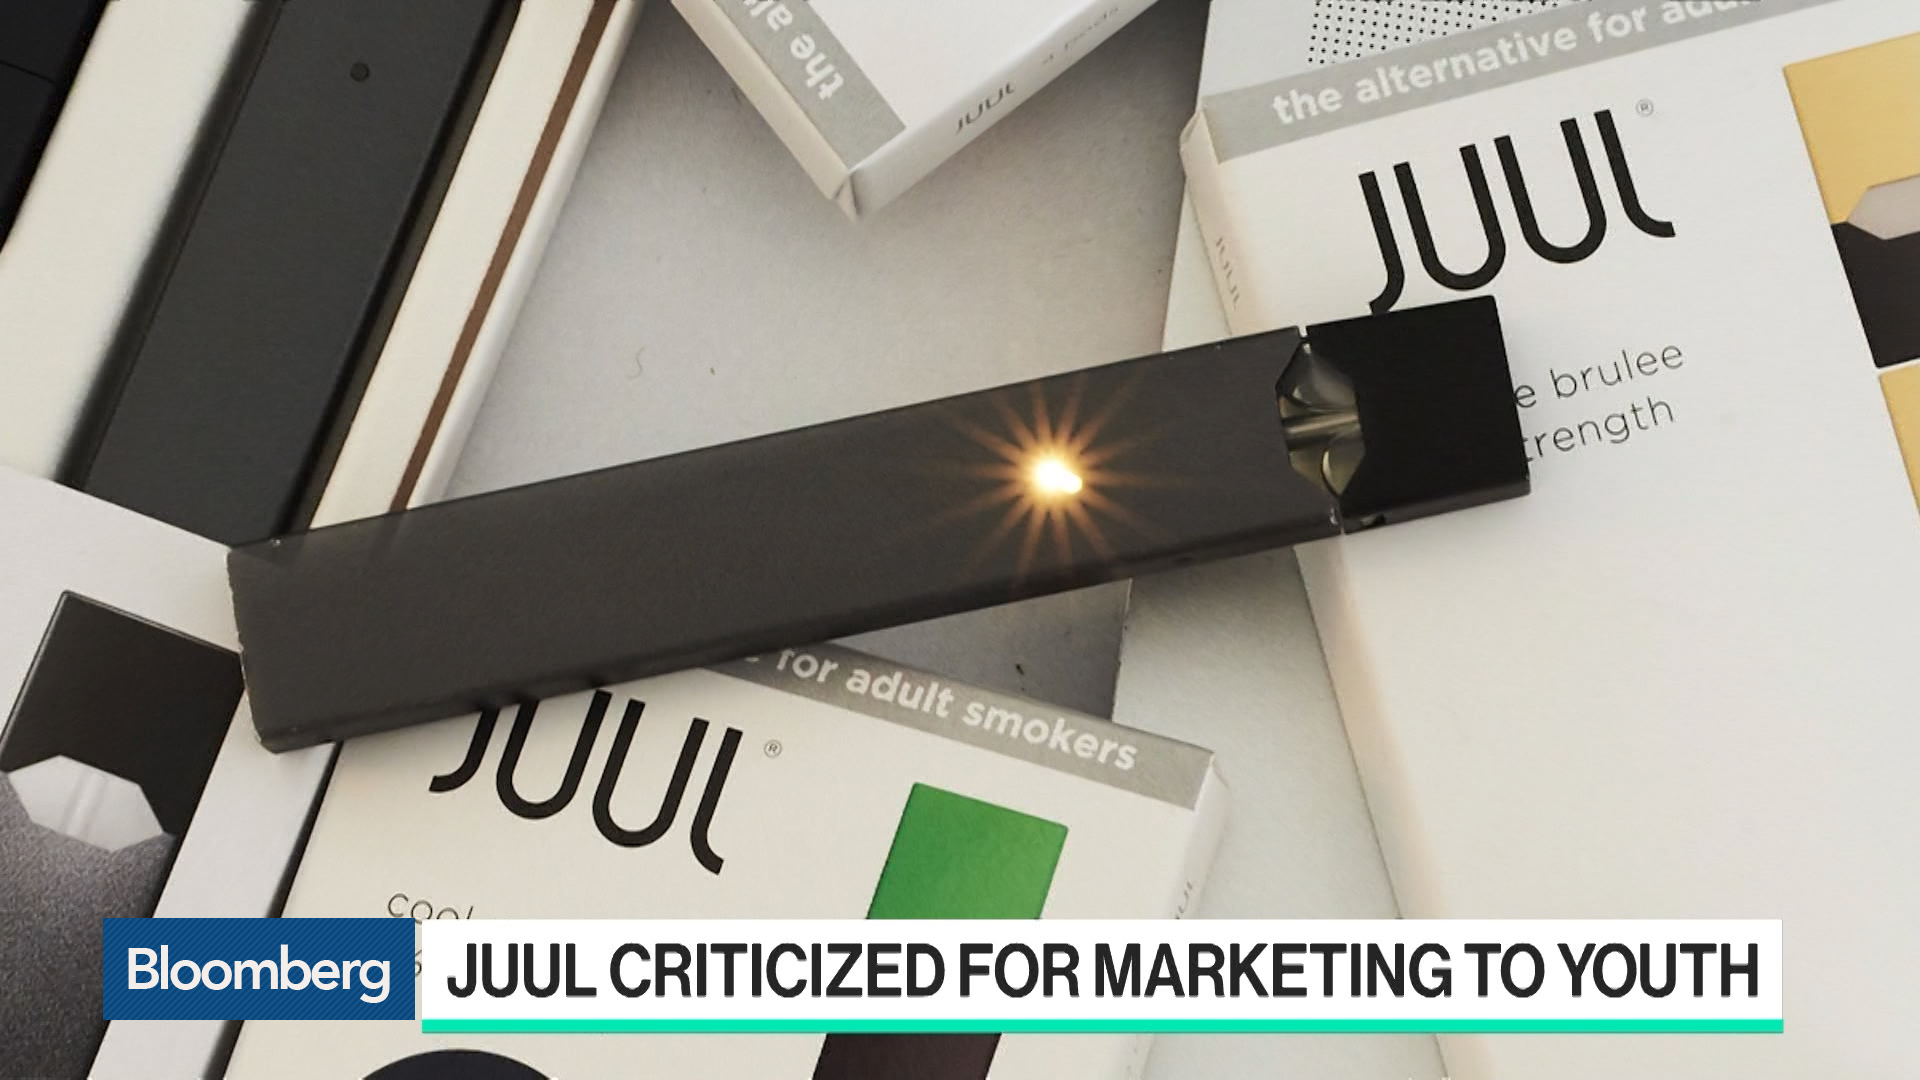 Juul Ban in San Francisco Is Passed, Outlawing E-Cigarette